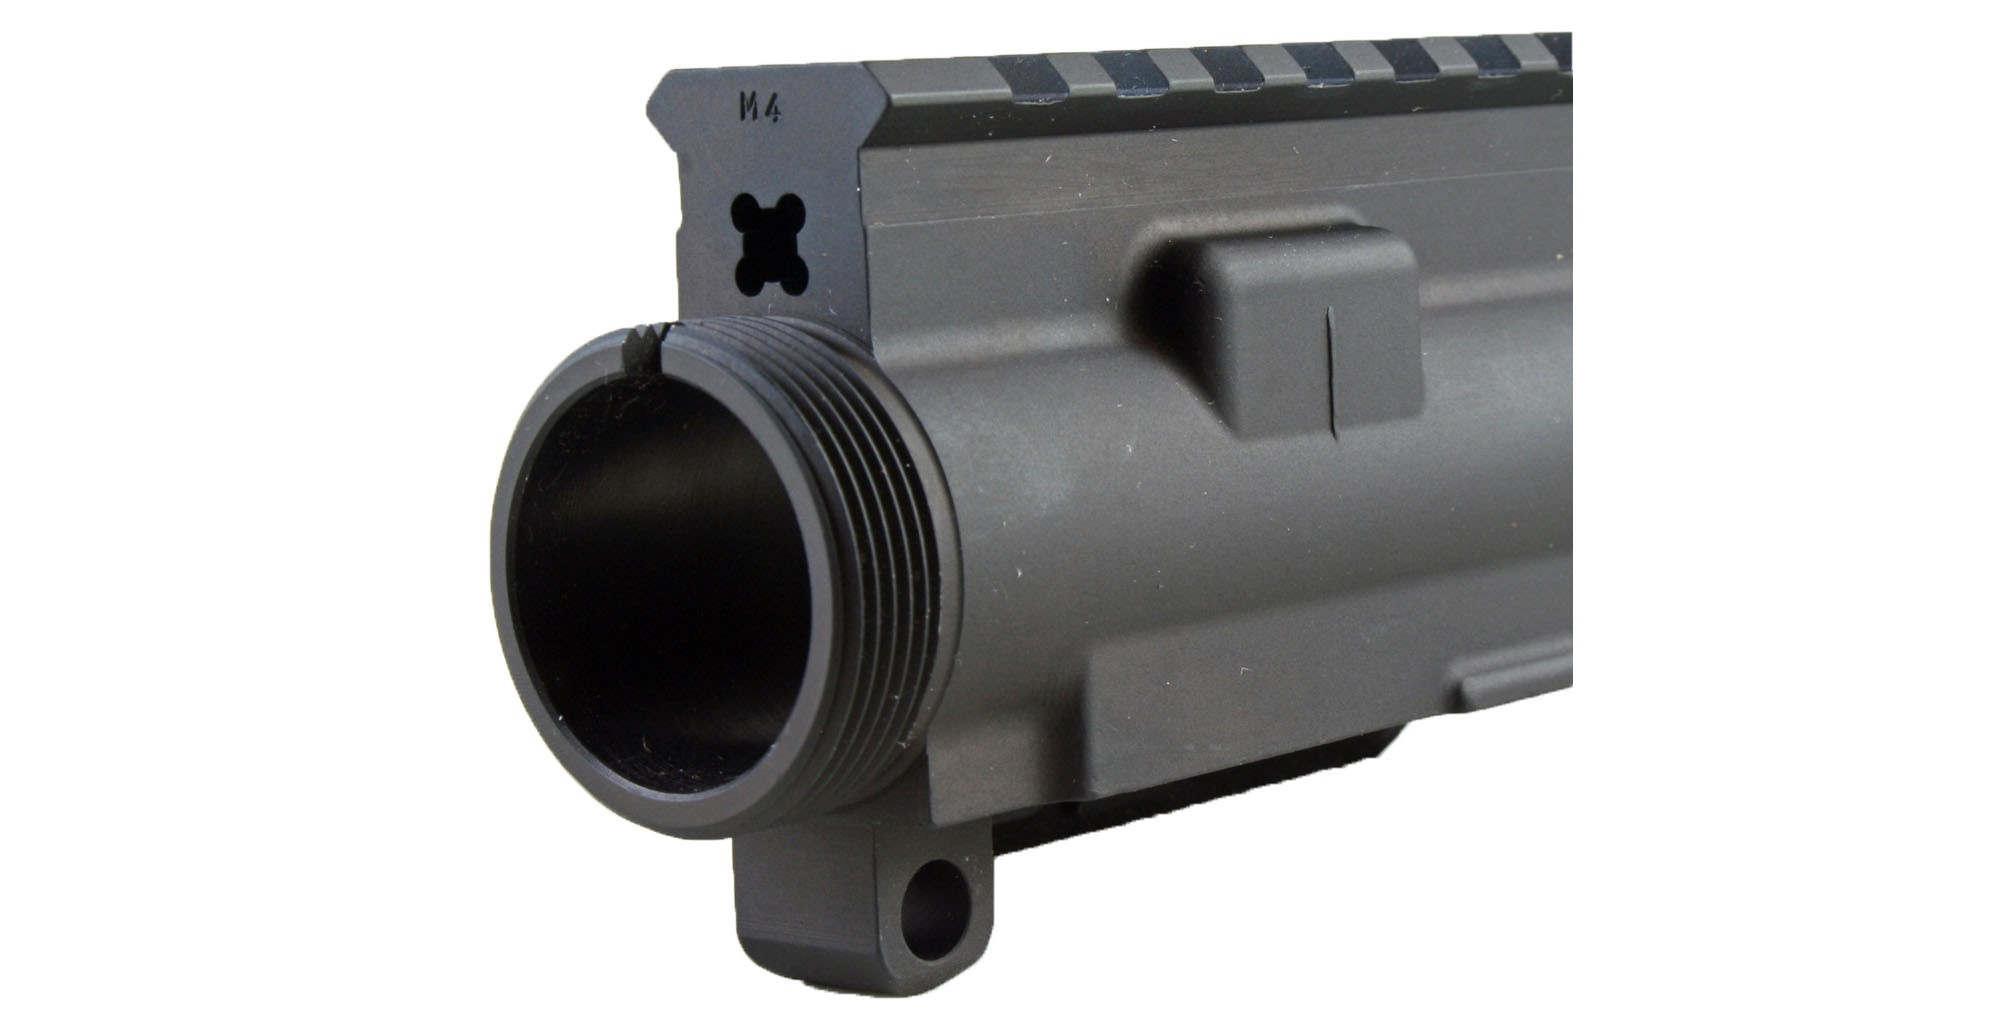 Colt M4 AR15 Upper Receiver